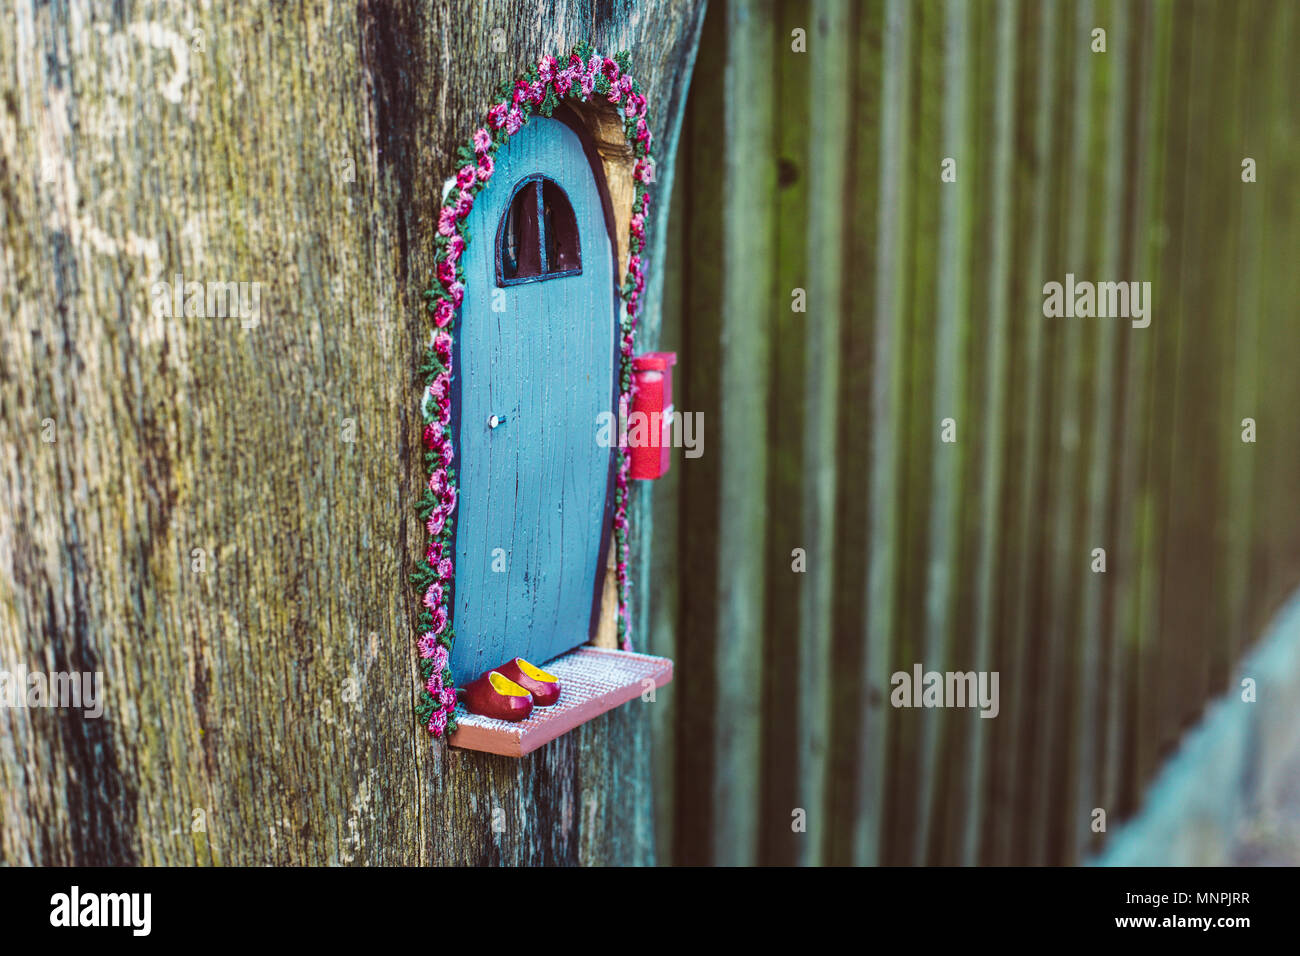 closeup photo of a tiny decorative house in the garden Stock Photo